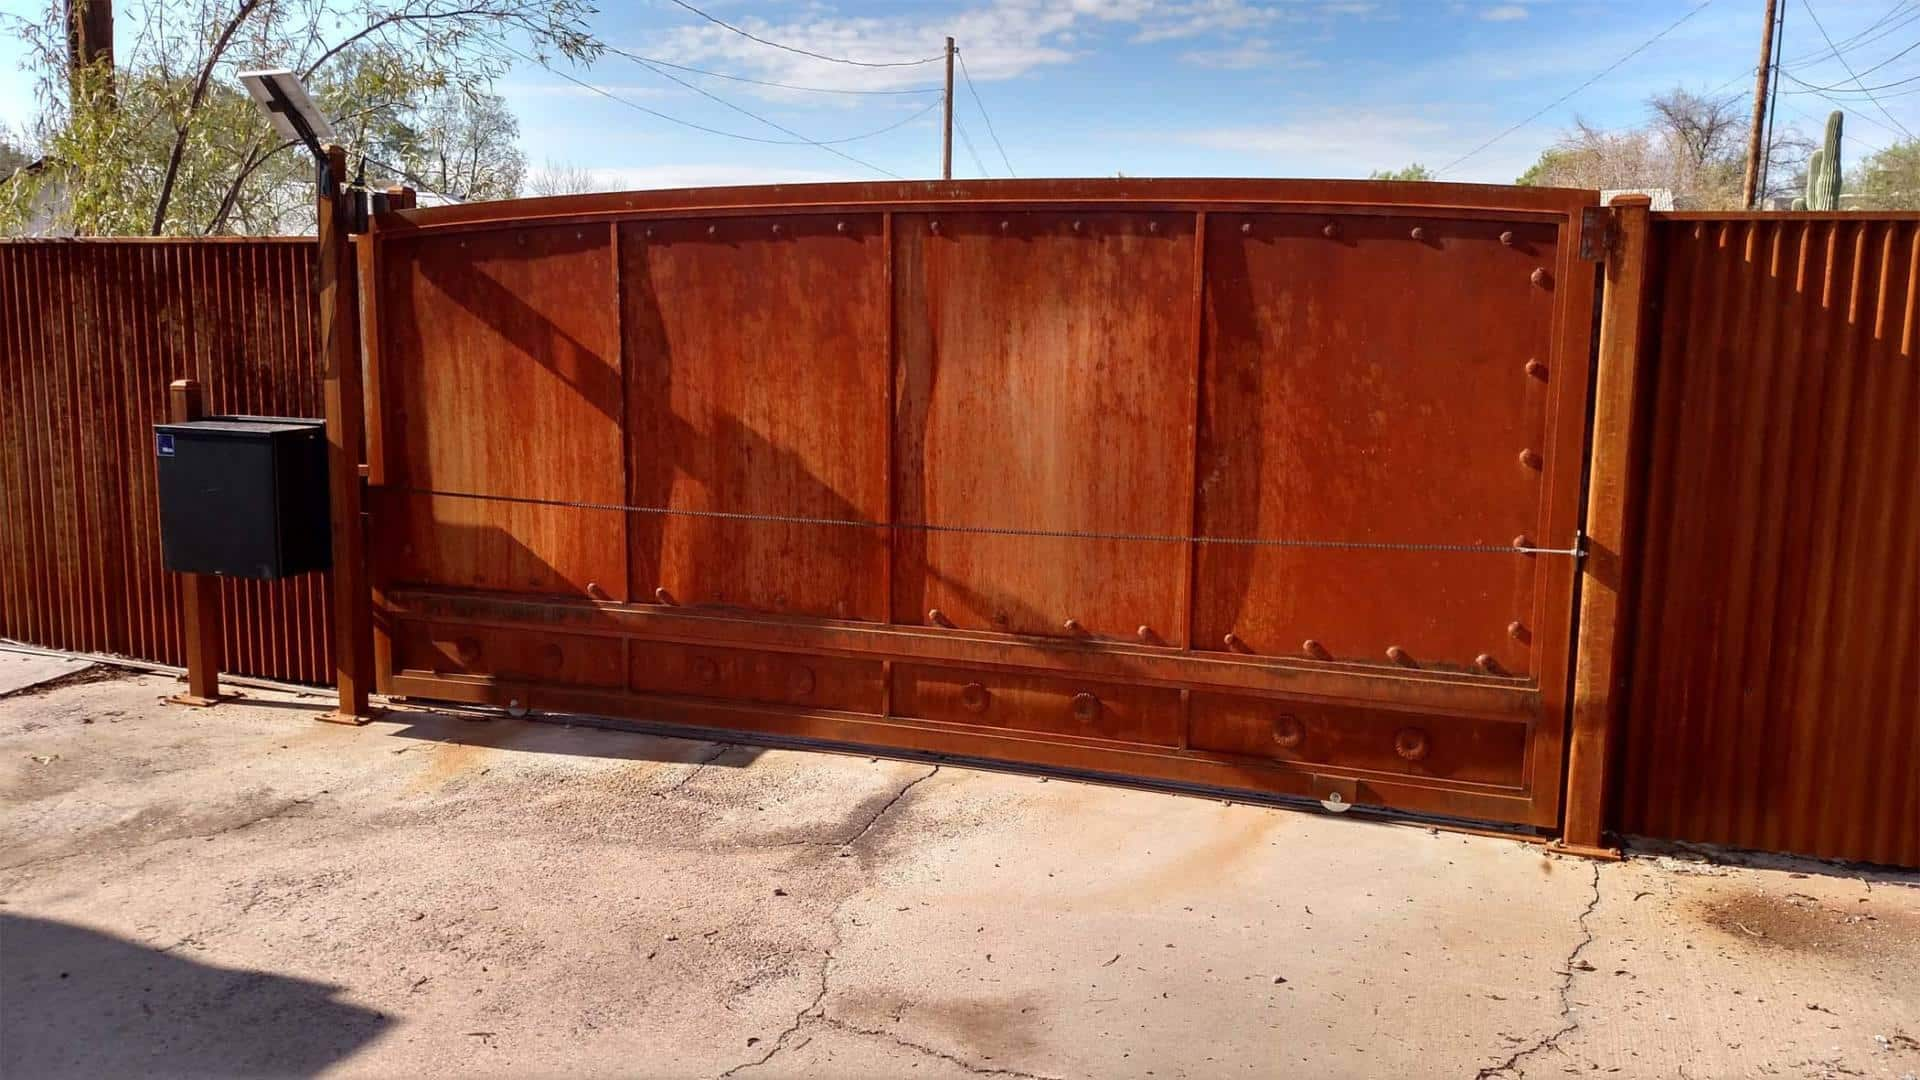 Sheet Steel Gate   Affordable Fence & Gates   Signature Ironworks   Corrugated Steel Gate   Rusty Corrugated Steel Gate   Natural Rust Corrugated Steel Gate   Arch   Rivets   Clevos   Automatic Driveway Gate   Flower Detail   Natural Rust Color